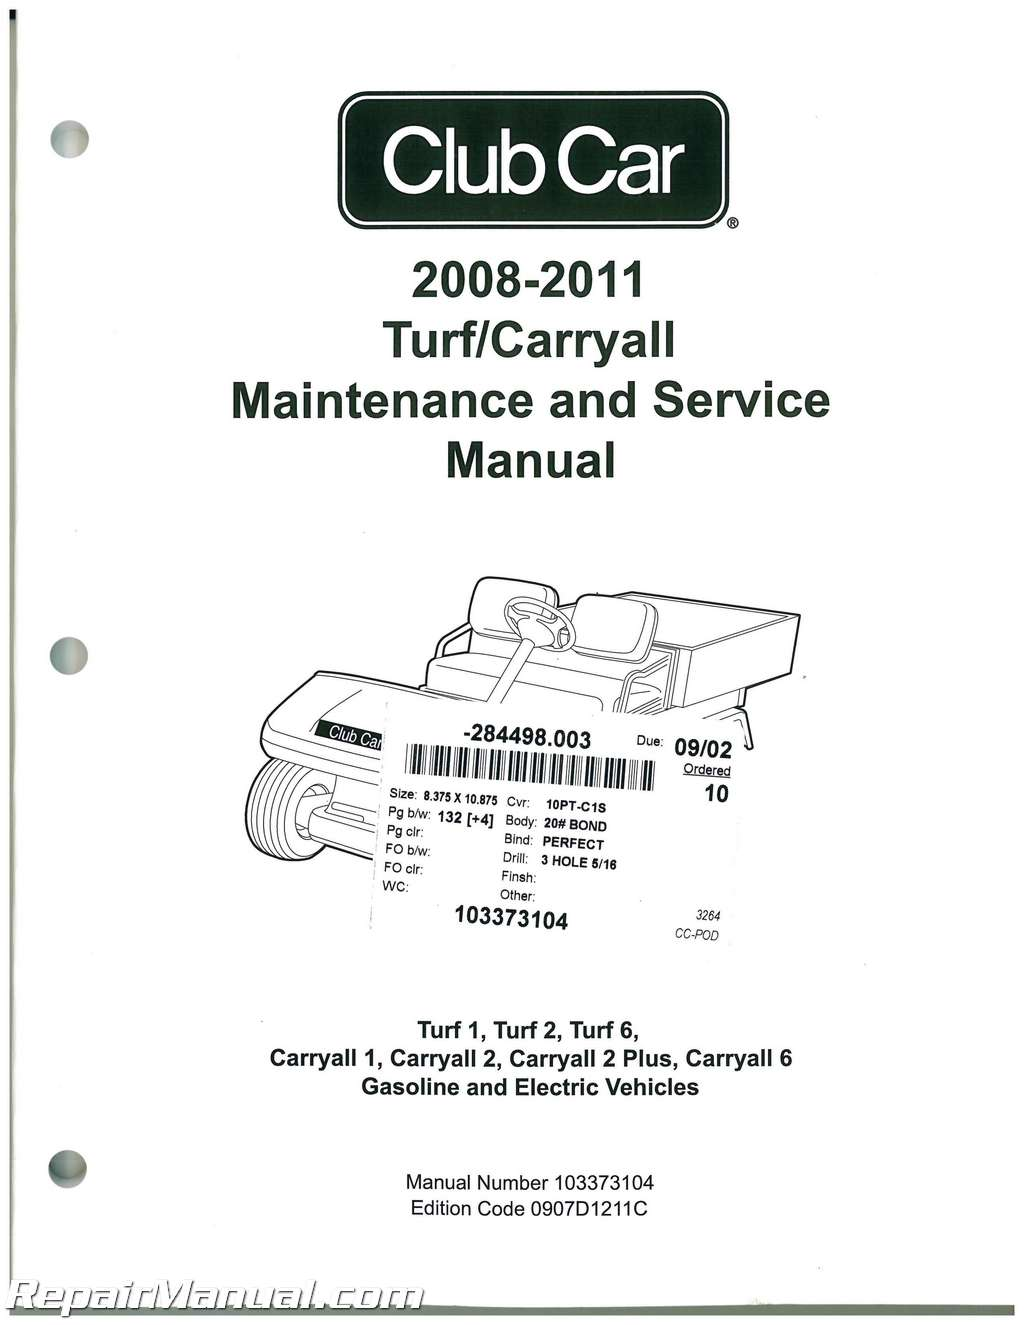 2008 2011 Club Car Turf, Carryall Turf 1, Turf 2, Turf 6, Carryall 1 95 Club  Car Wiring Diagram Club Car Carryall 1 Wiring Diagram